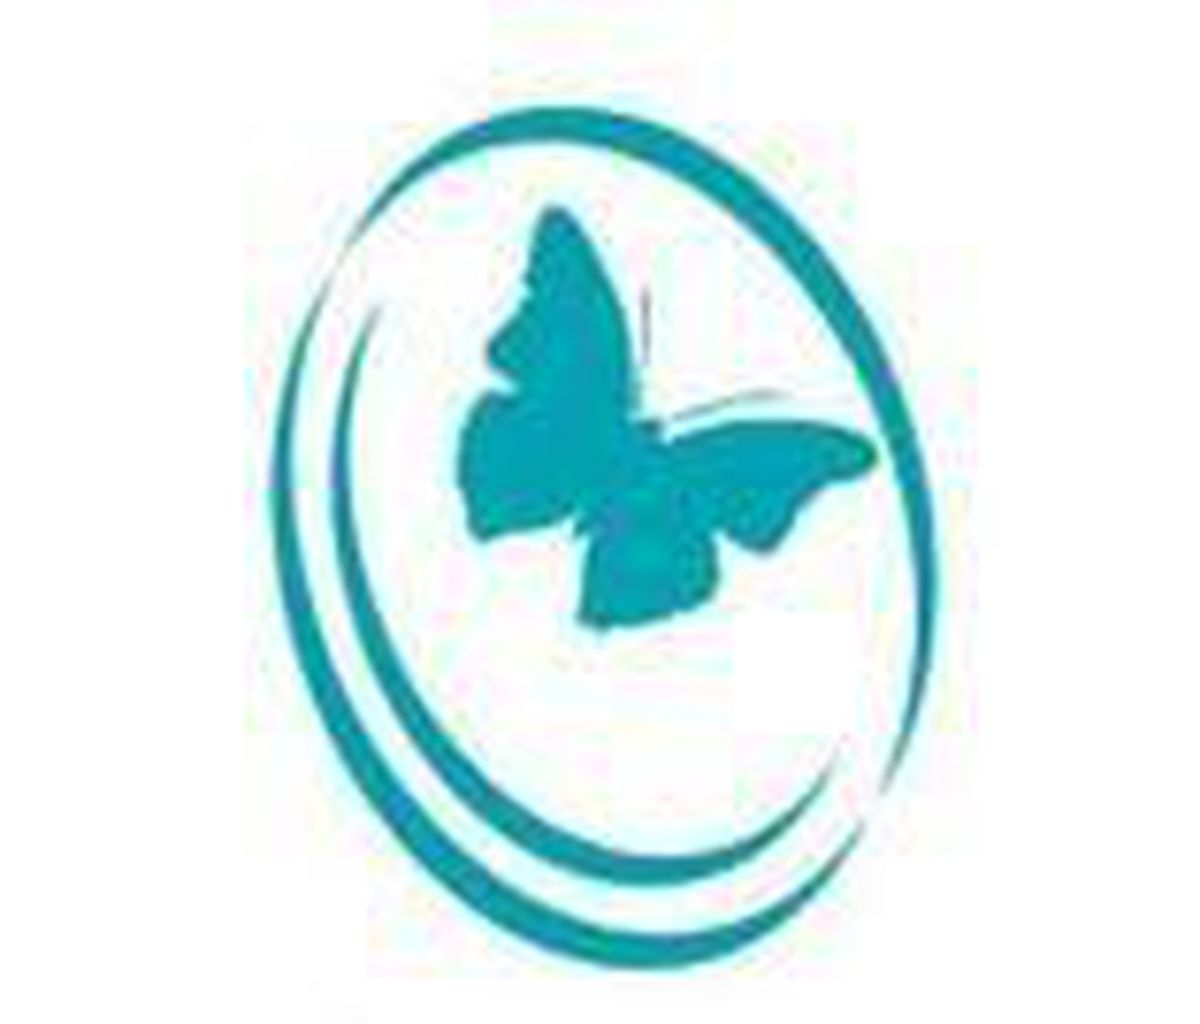 What Do Butterfly Wings And Ovarian Cancer Have In Common